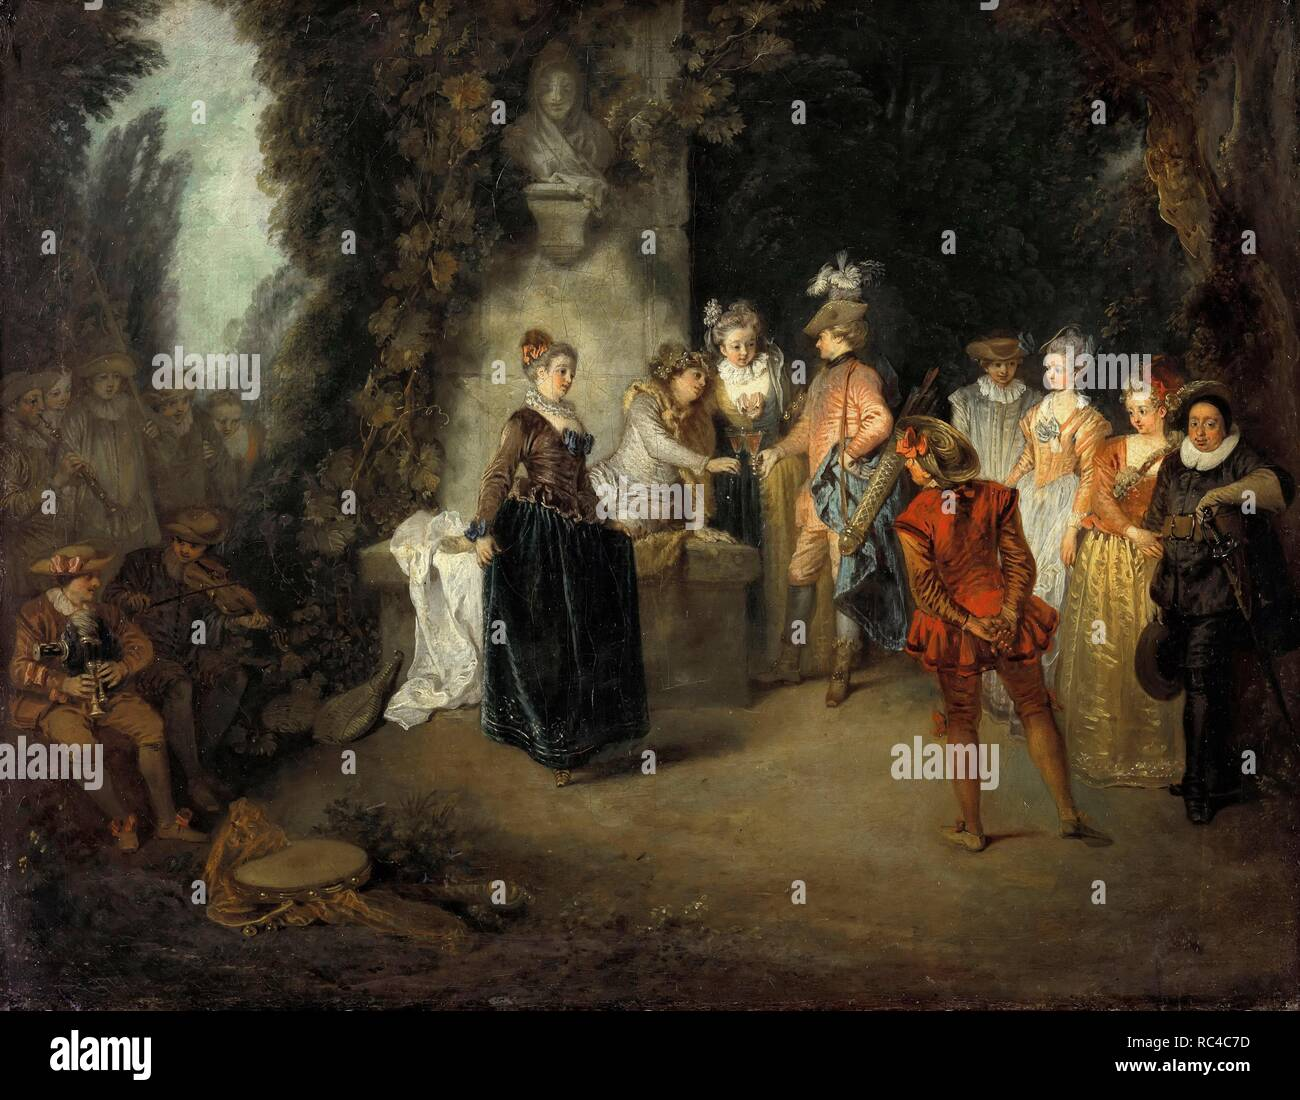 The French Comedy. Museum: Staatliche Museen, Berlin. Author: Watteau, Jean Antoine. - Stock Image